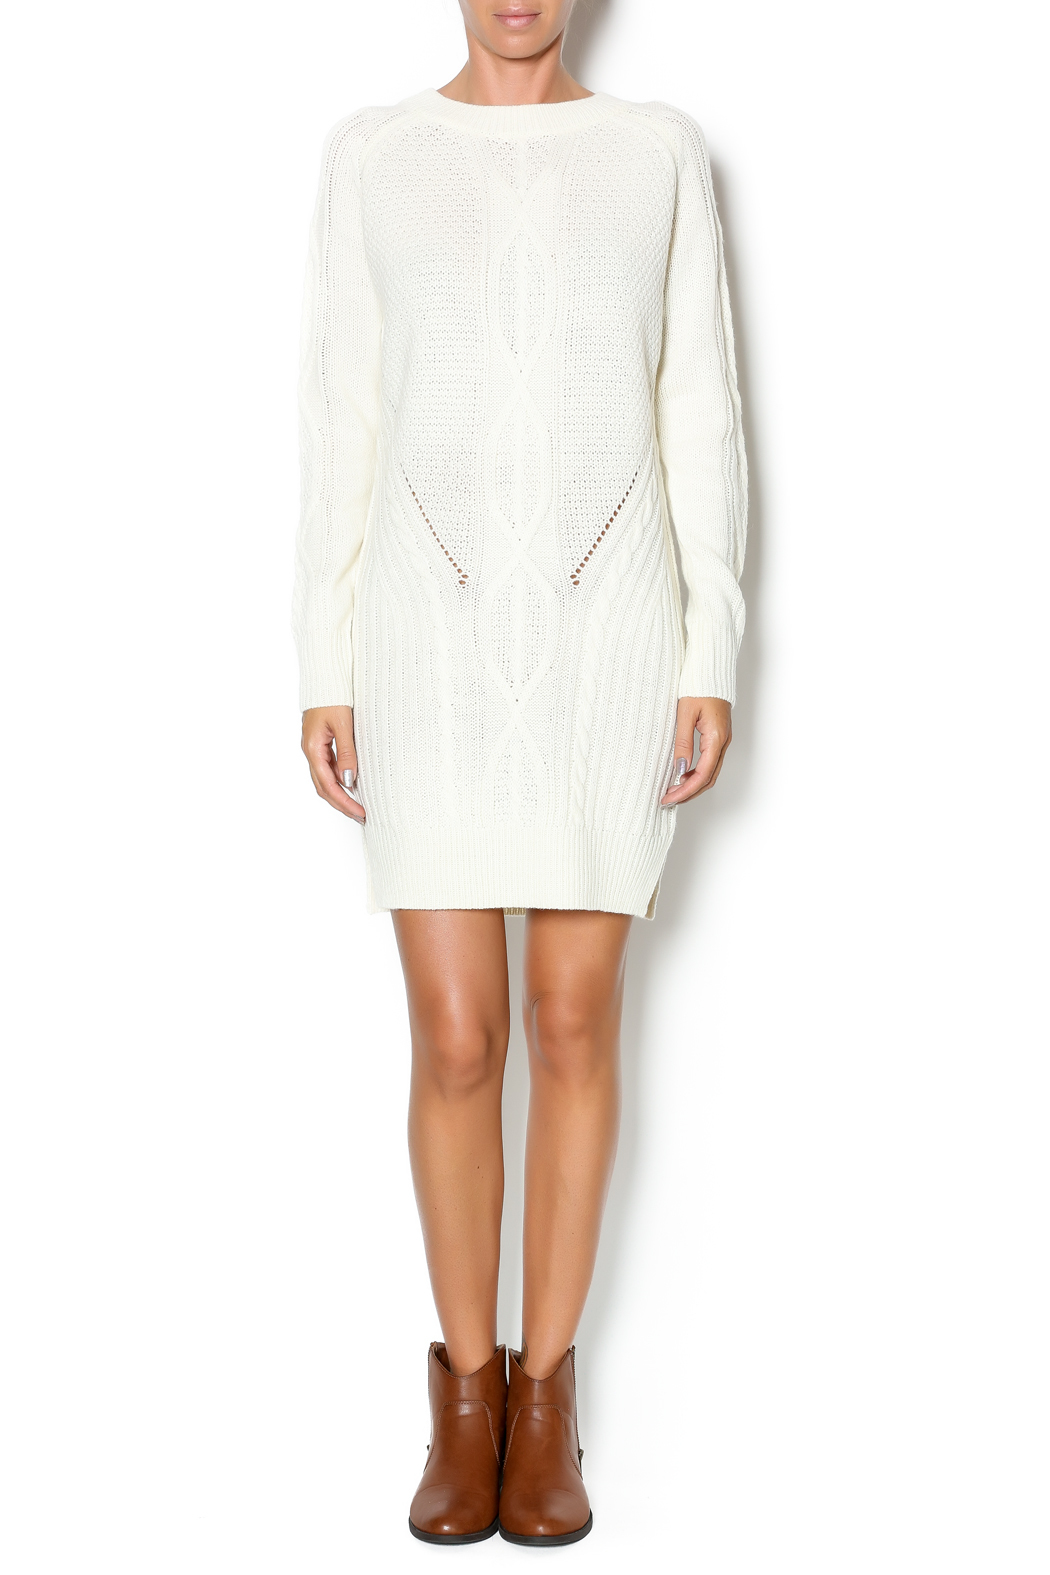 Lumiere Winter White Sweater Dress from New York City by Dor L'Dor ...